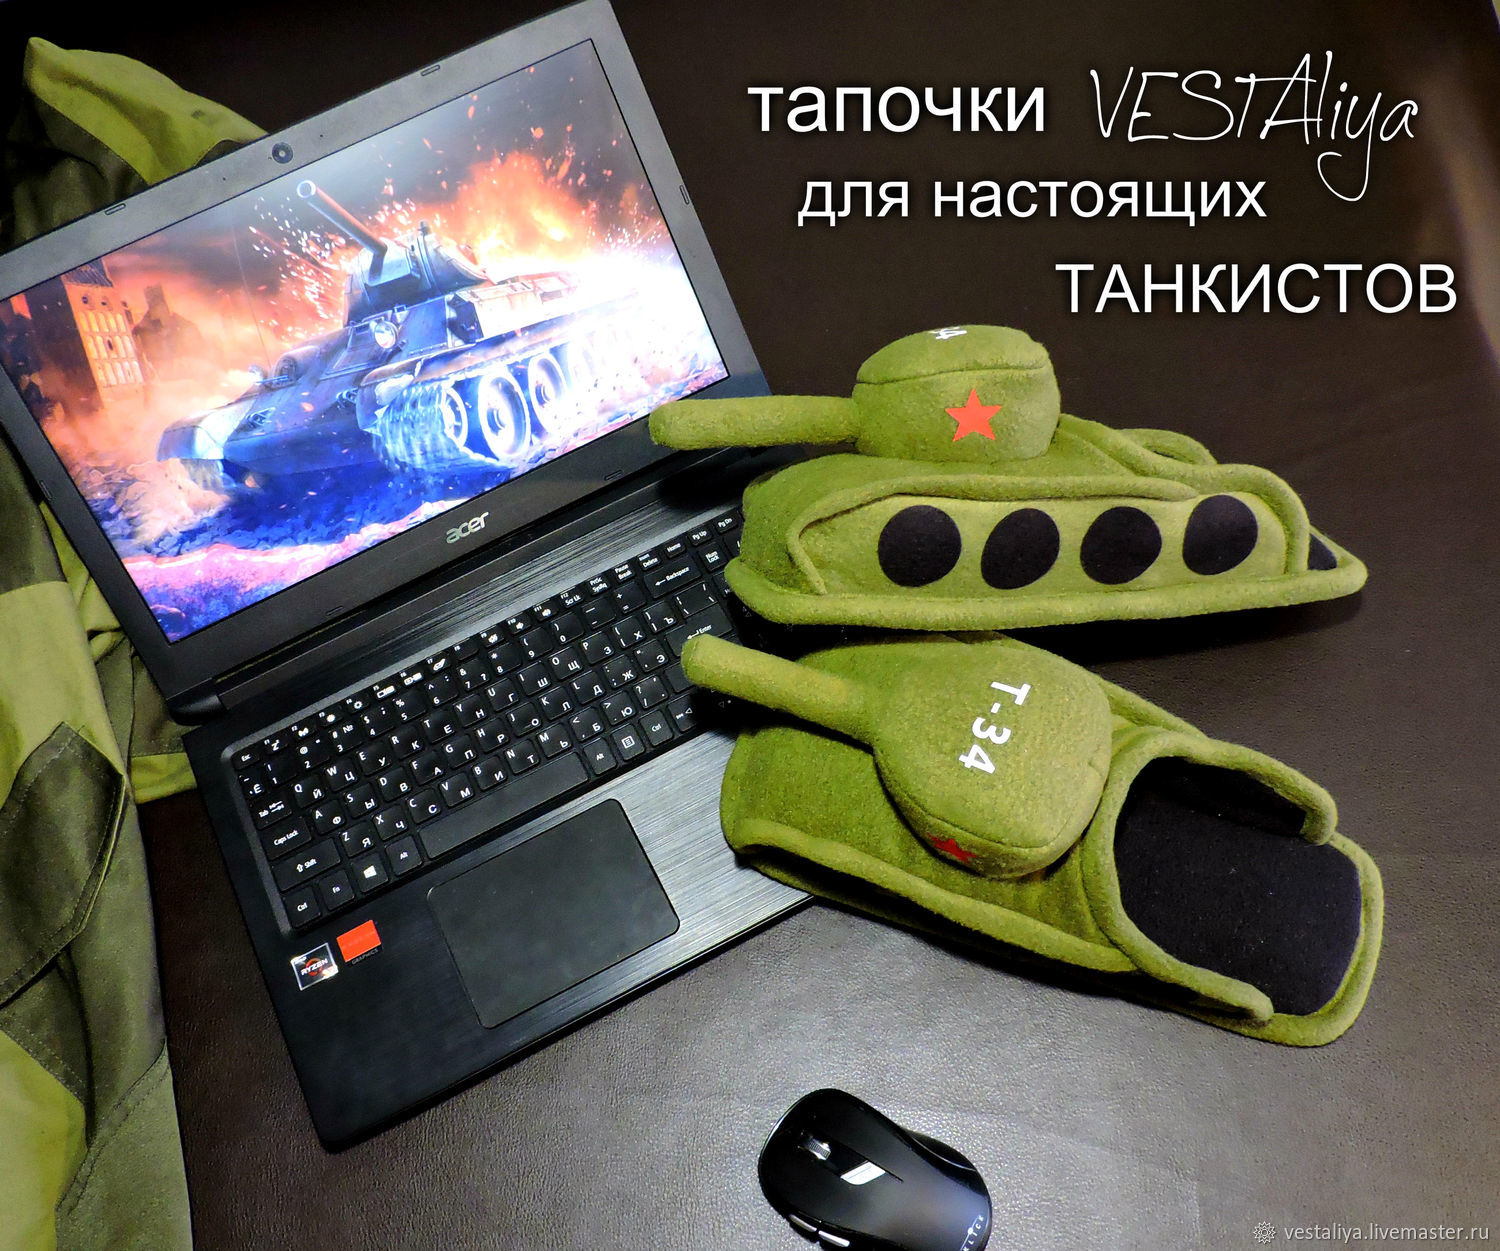 Sneaker Tanks, Gifts for February 23, Novosibirsk,  Фото №1